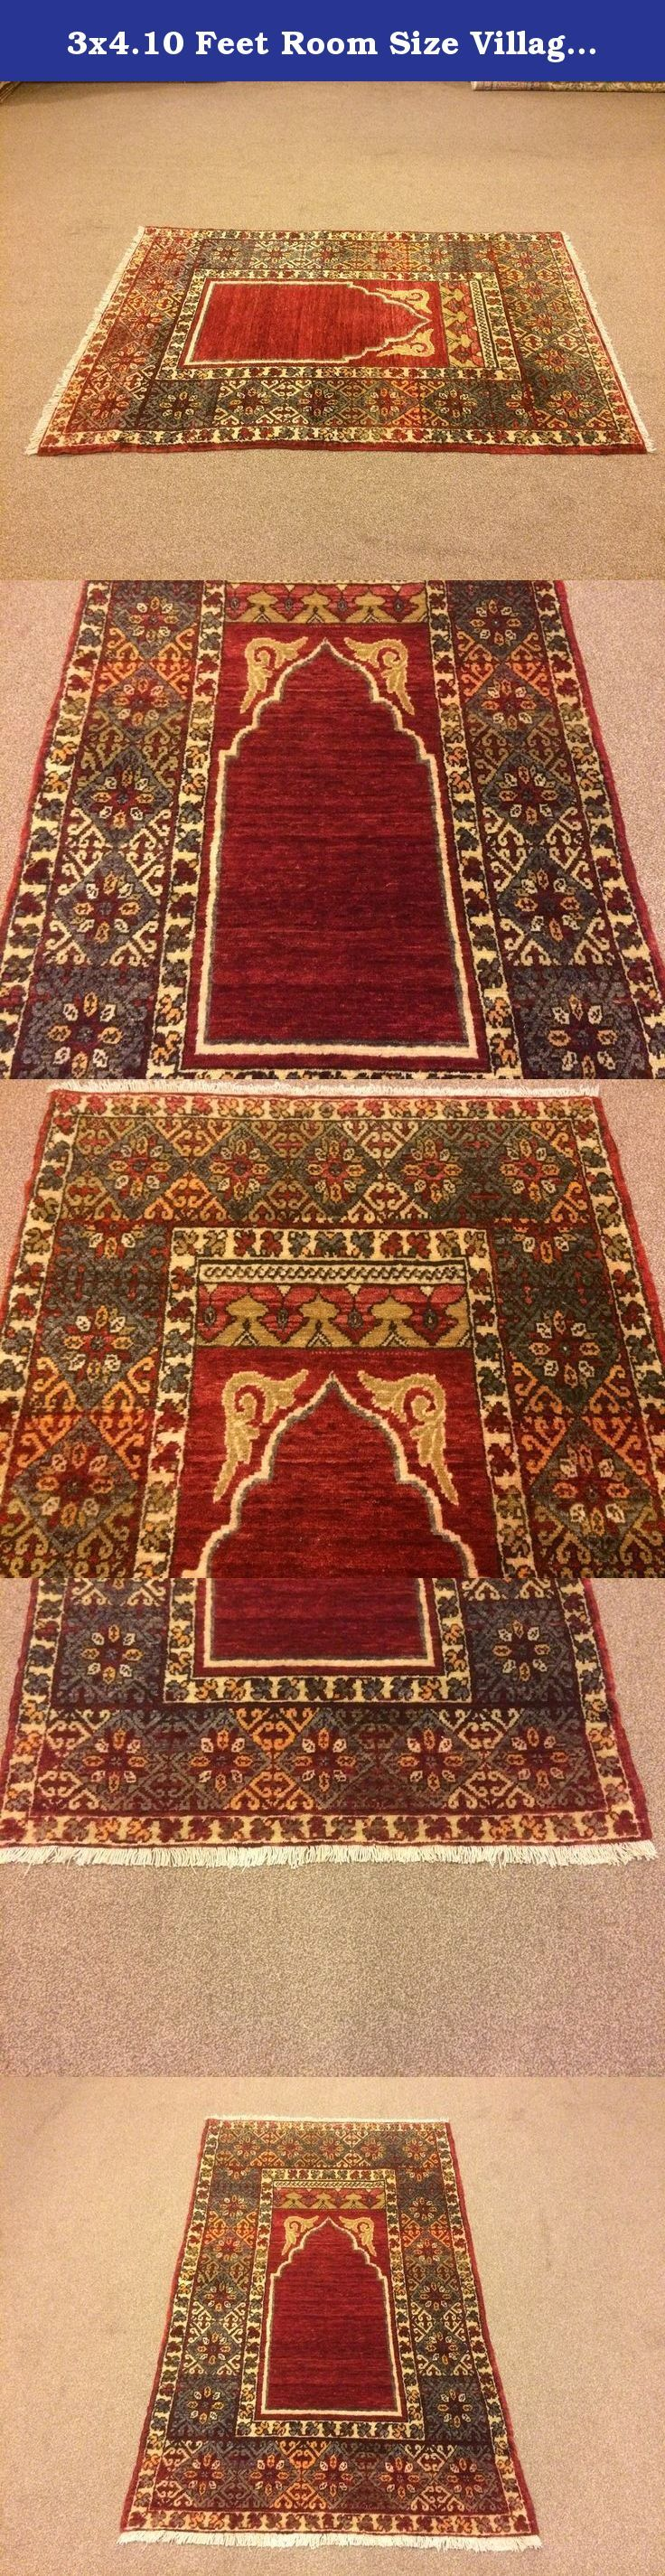 3x4.10 Feet Room Size Village Rug Vintage Rug Bedroom Size Handmade Carpet Handmade Rug Handmade Big Rug Big Vintage Carpet Code:A536. It is %100 turkish carpet.All colours are natural dyed. Size:3x4.10 feet 91x147 cm Material:wool on wool Code:A536 Fast Worldwide Shipment in 1-3 business days after the order and it may take an additional 3-5 days for delivery. All items are shipped by Fedex and Ups.Please note that light effect, monitor's brightness, contrast etc. may cause a slight…